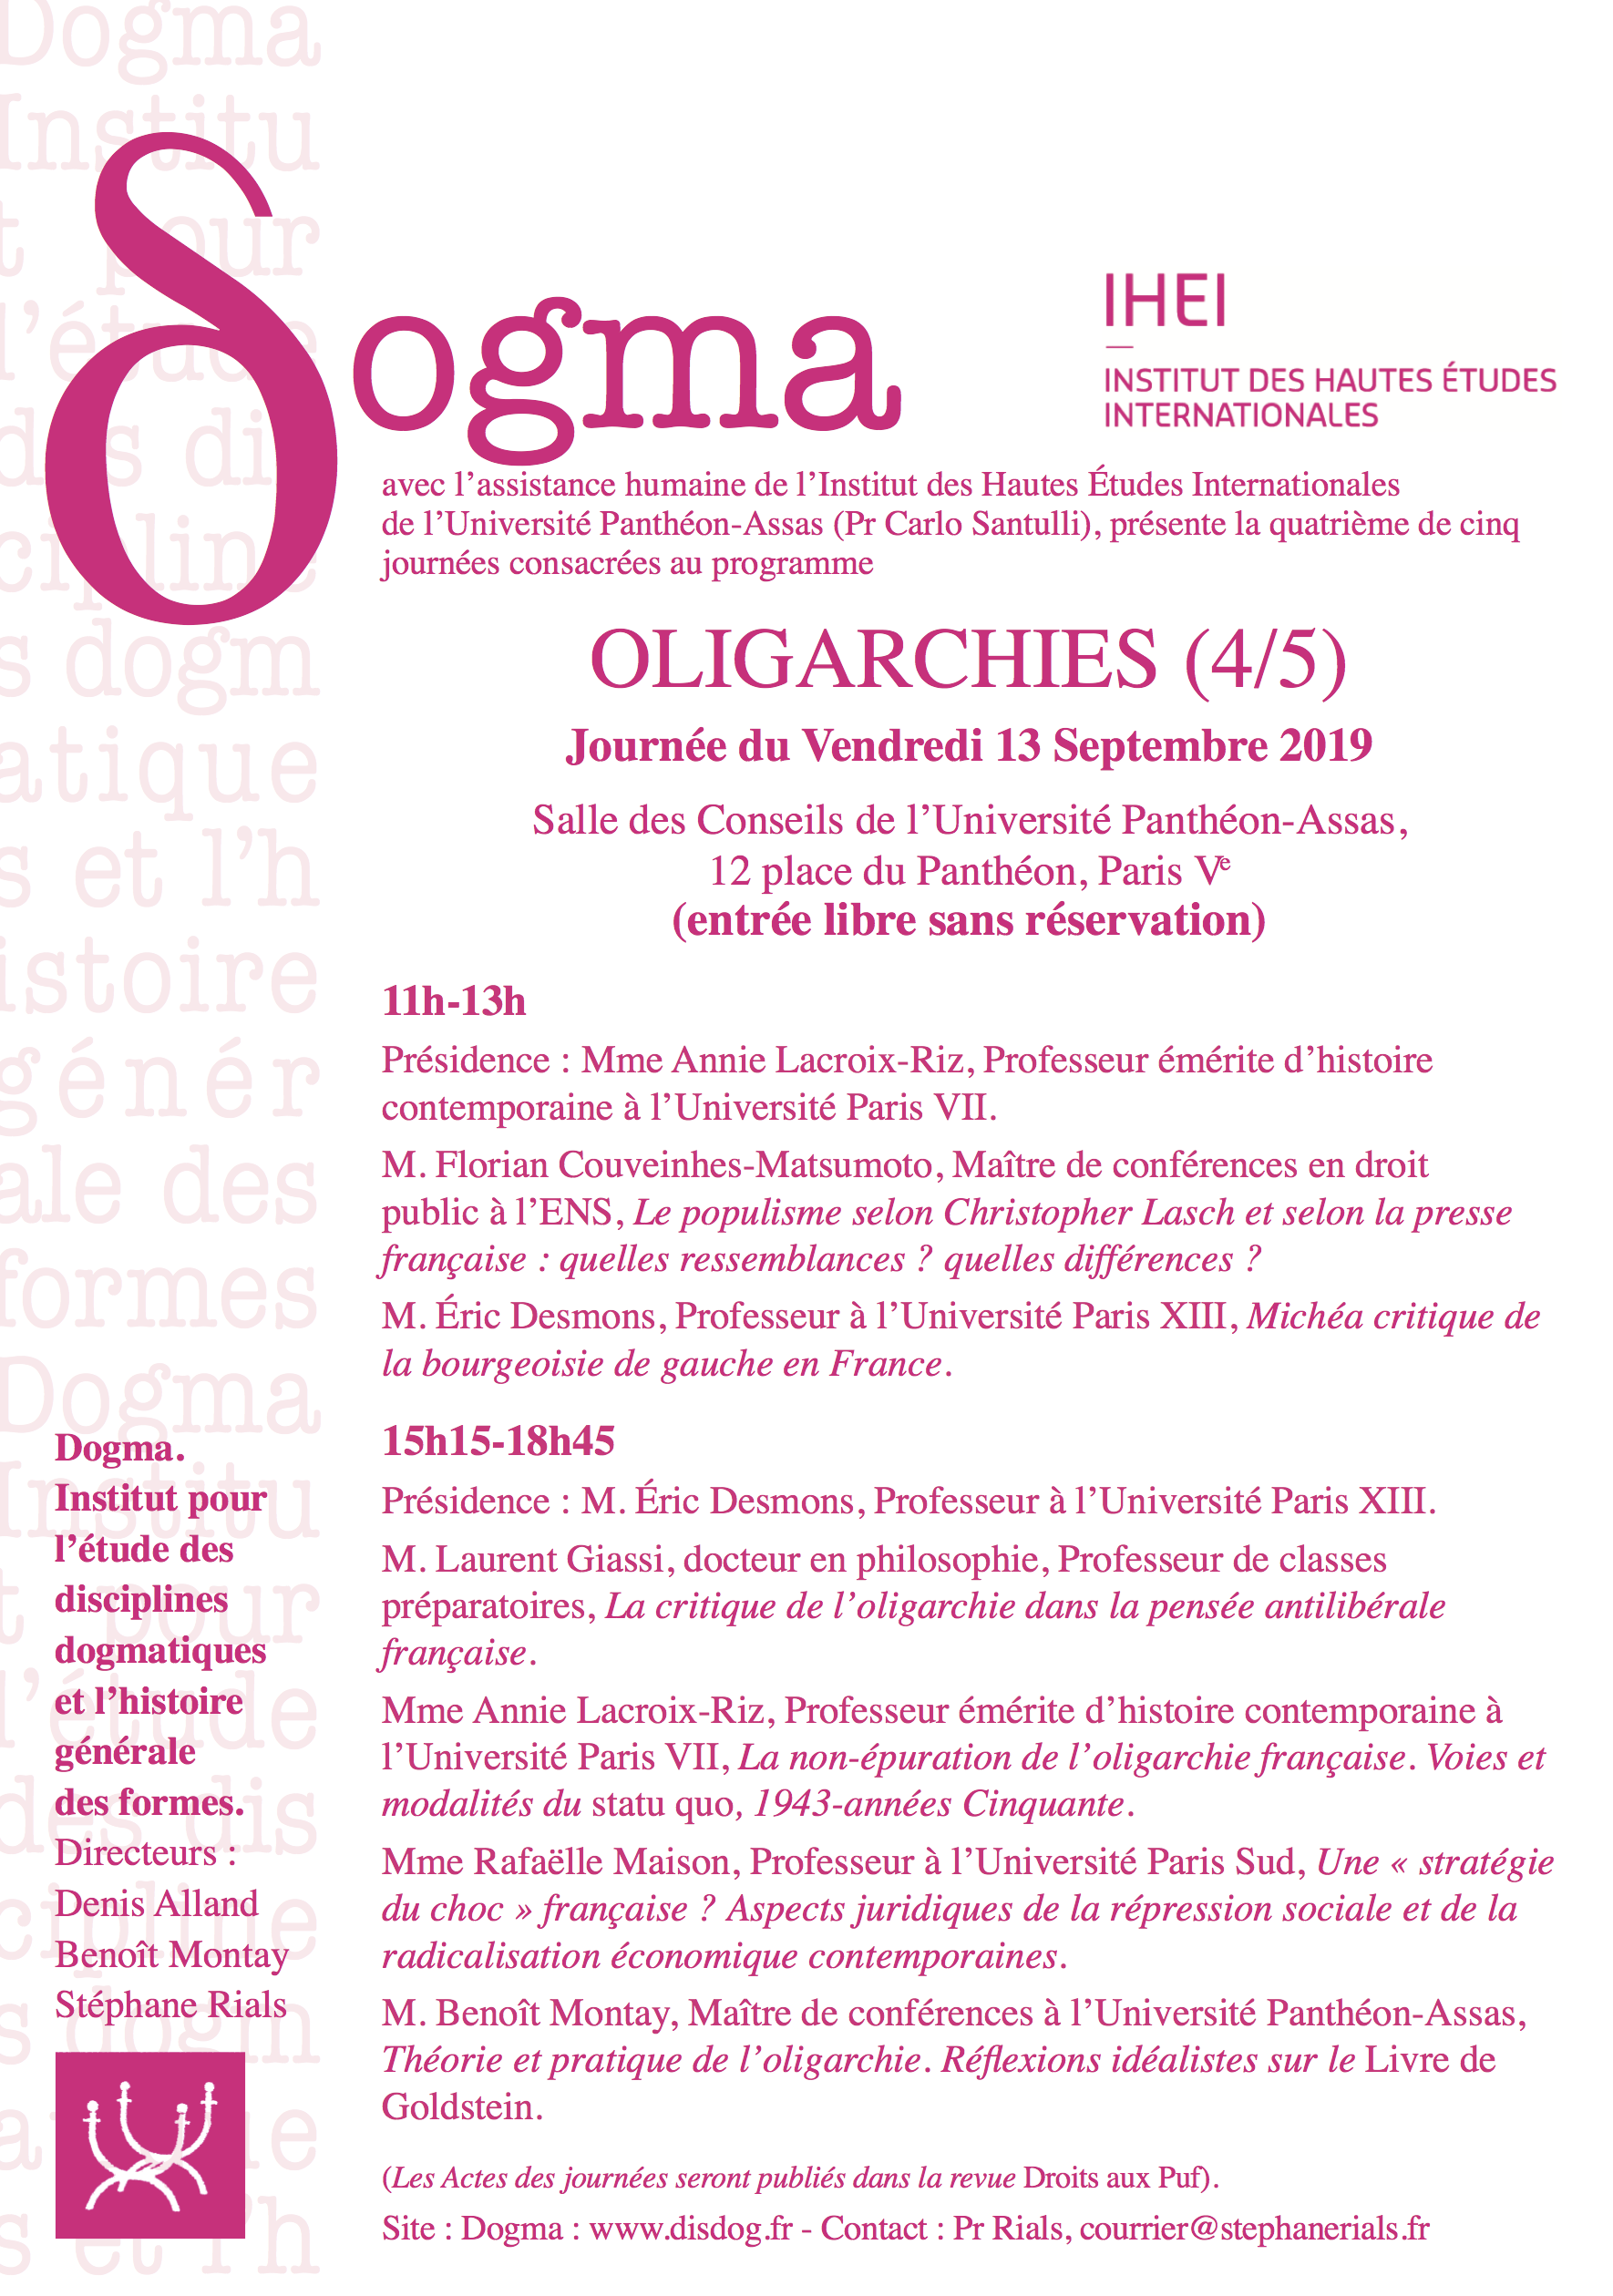 programme-journees-dogma-oligarchies-4-5